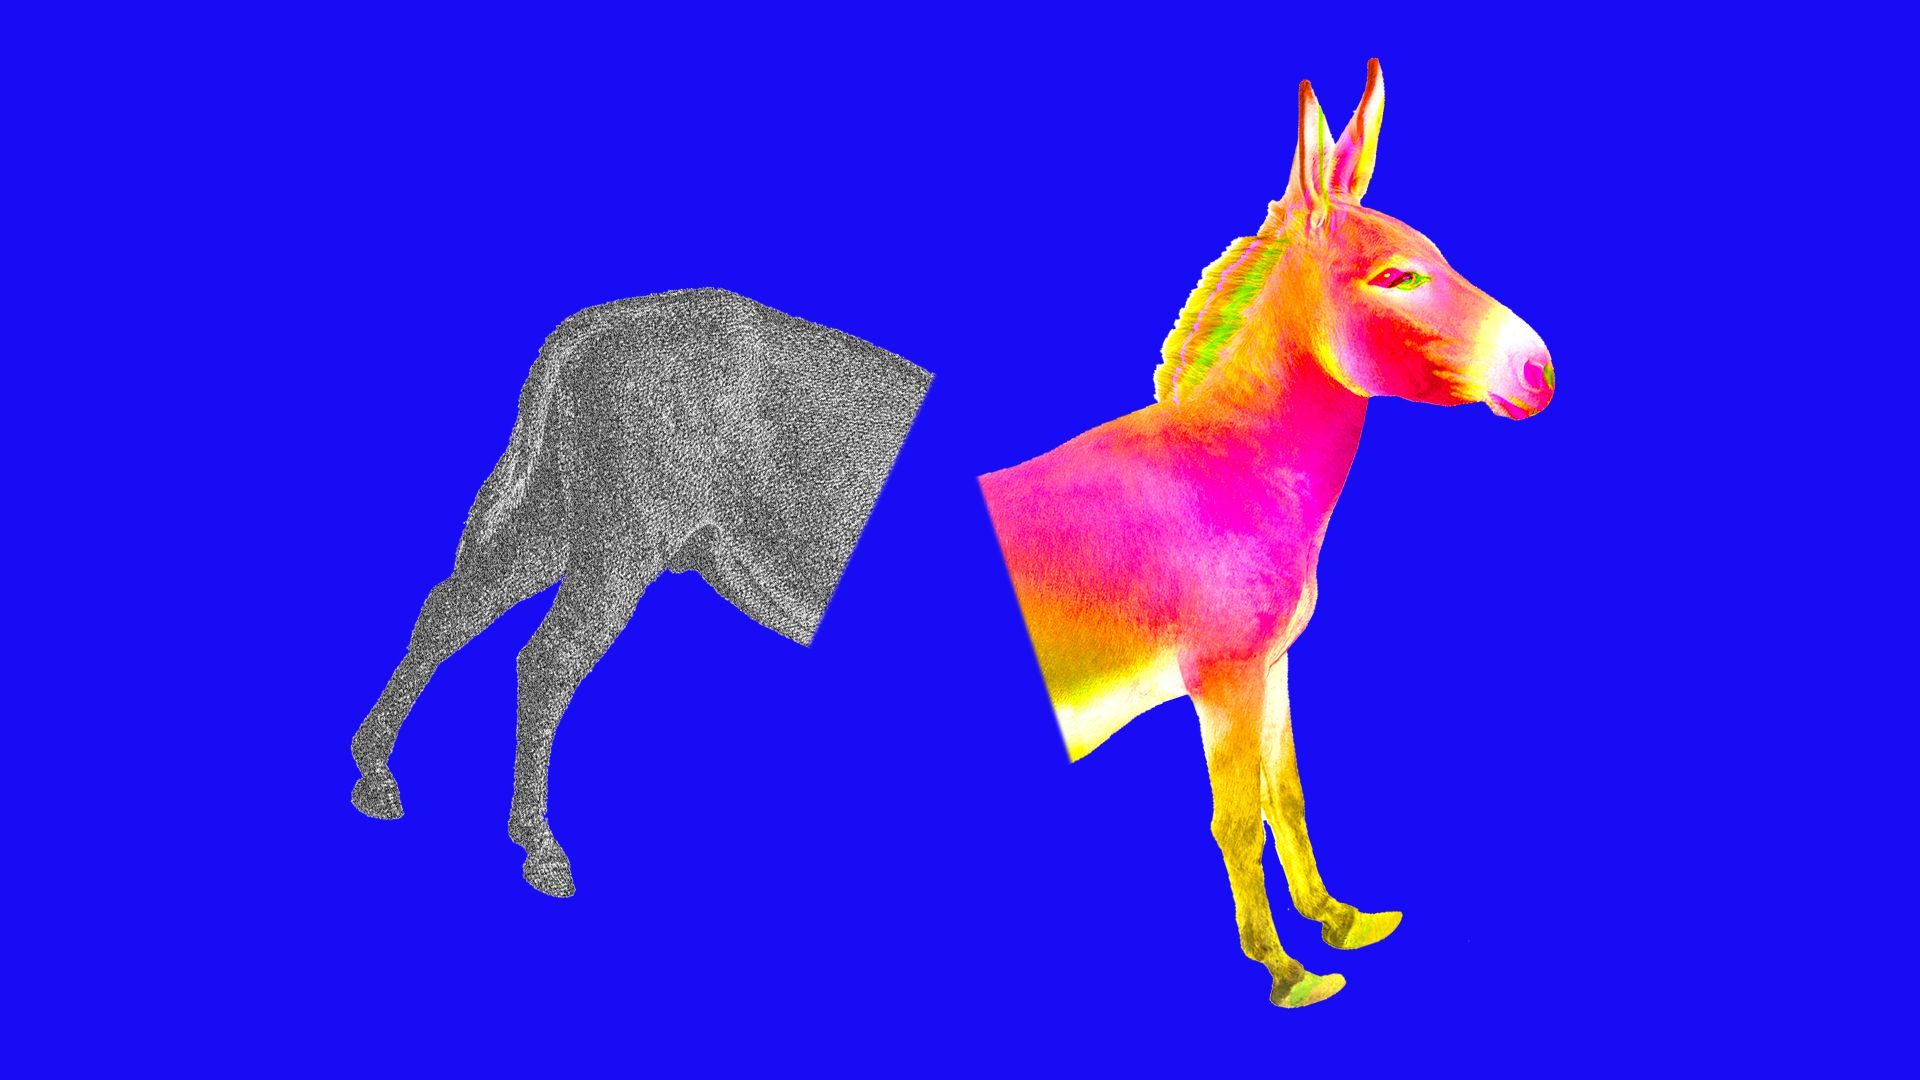 This illustration shows a donkey, symbolizing the Democratic party, split in half and shown in different colors.